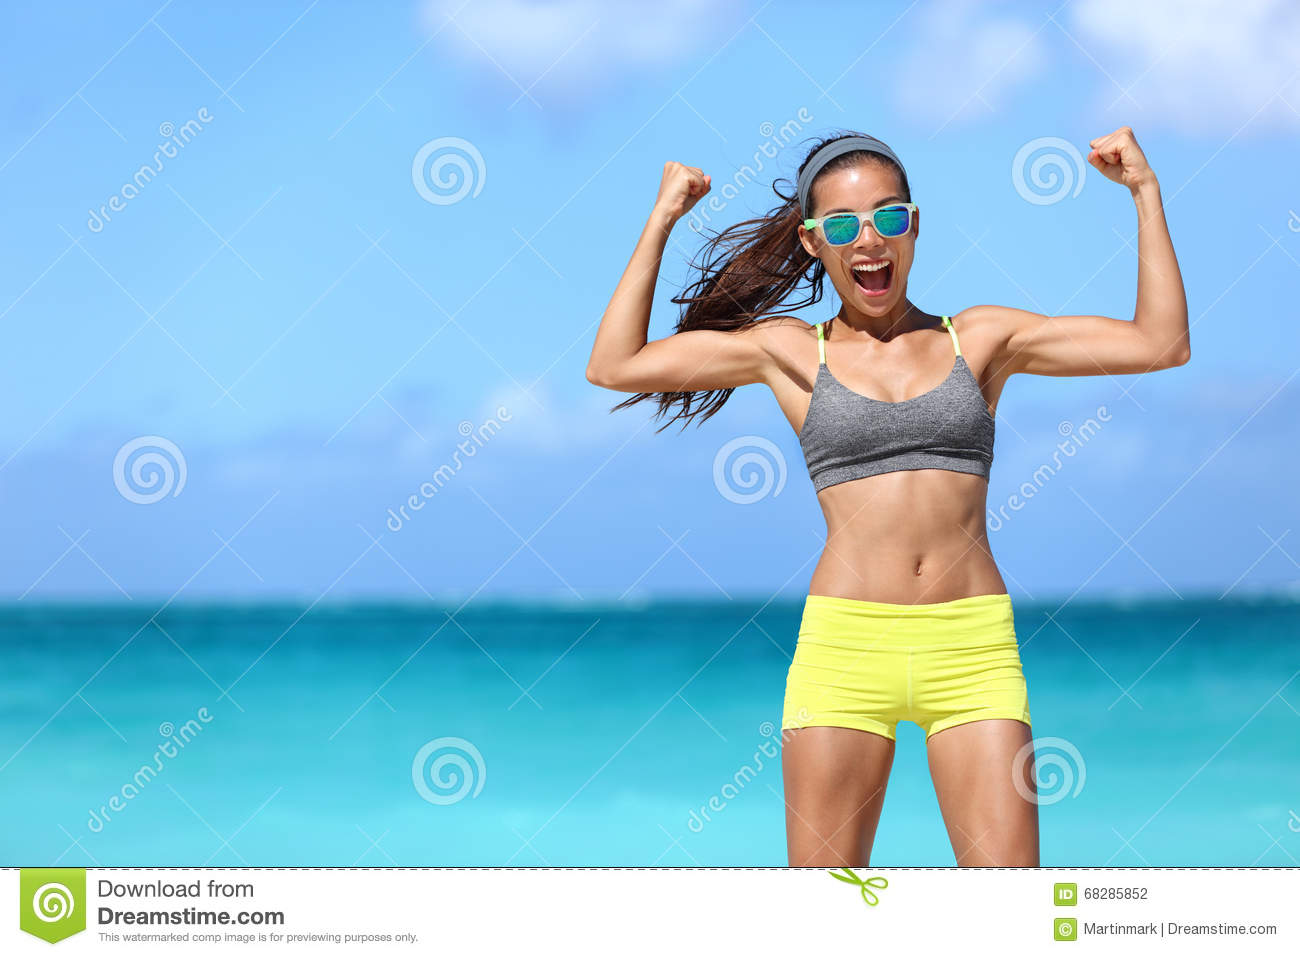 Strong fitness woman having fun showing off muscular arms